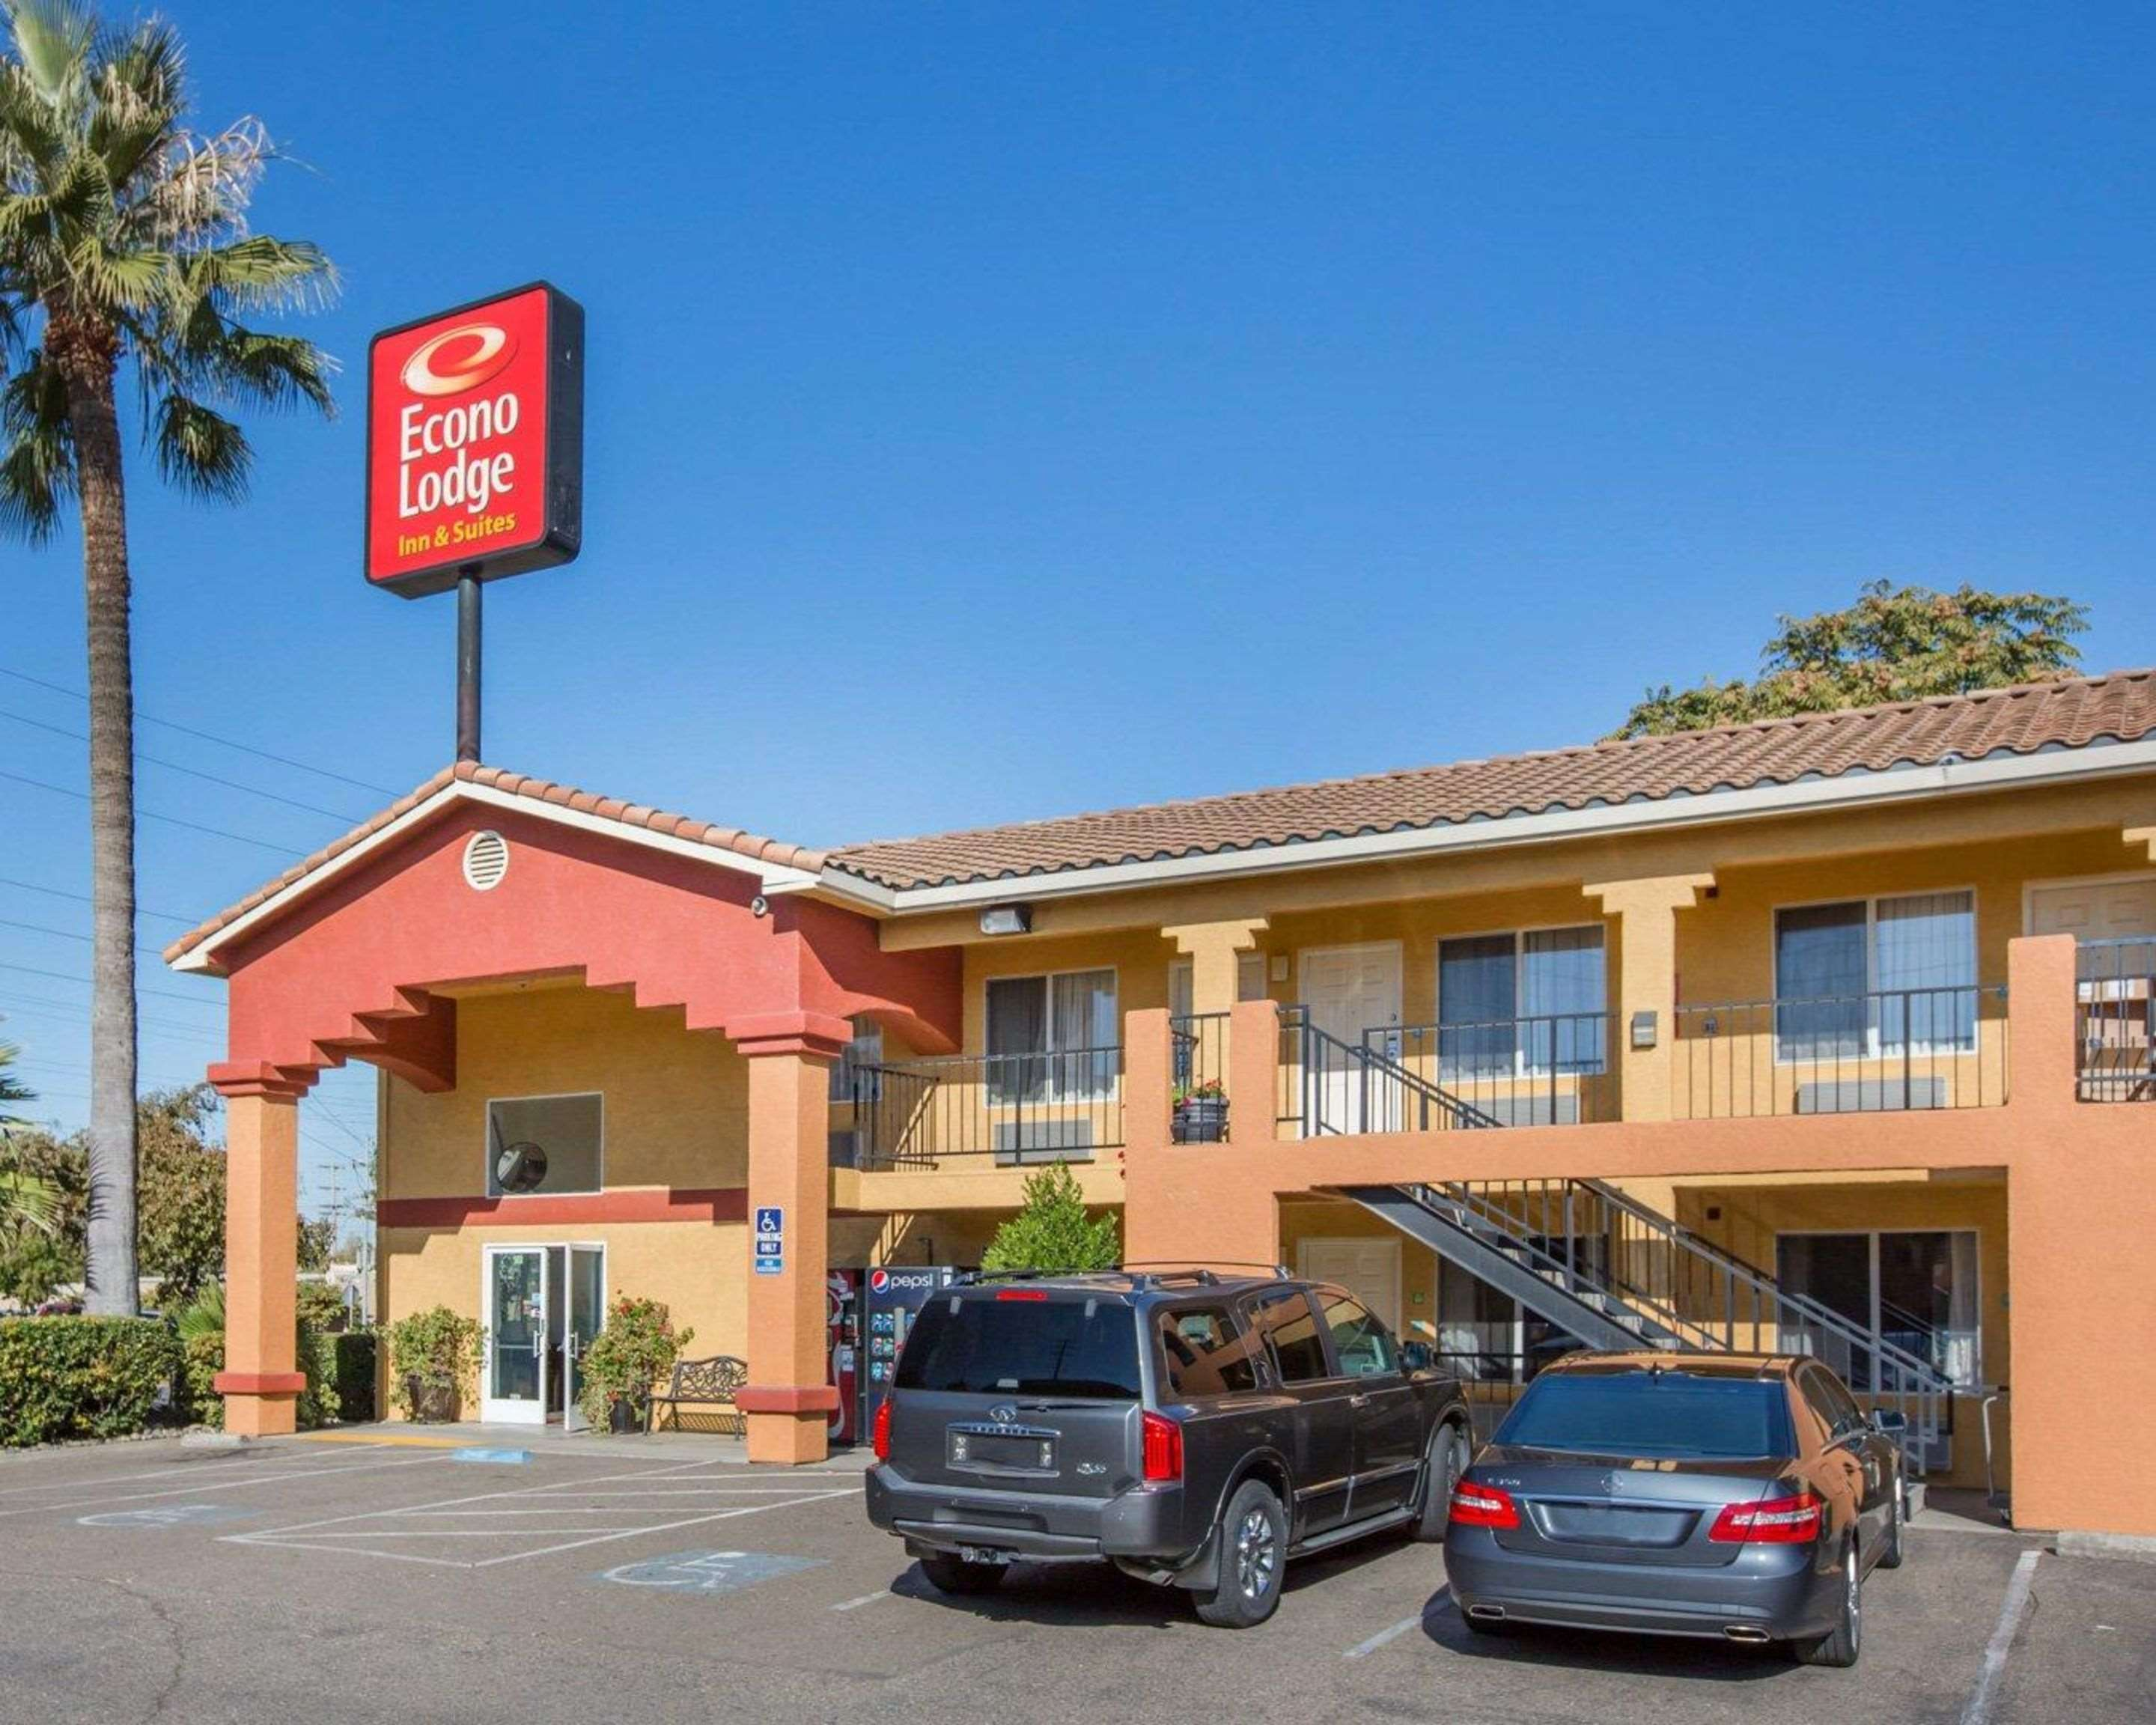 Econo Lodge Inn & Suites Lodi - Wine Country Area in Lodi, CA, photo #3